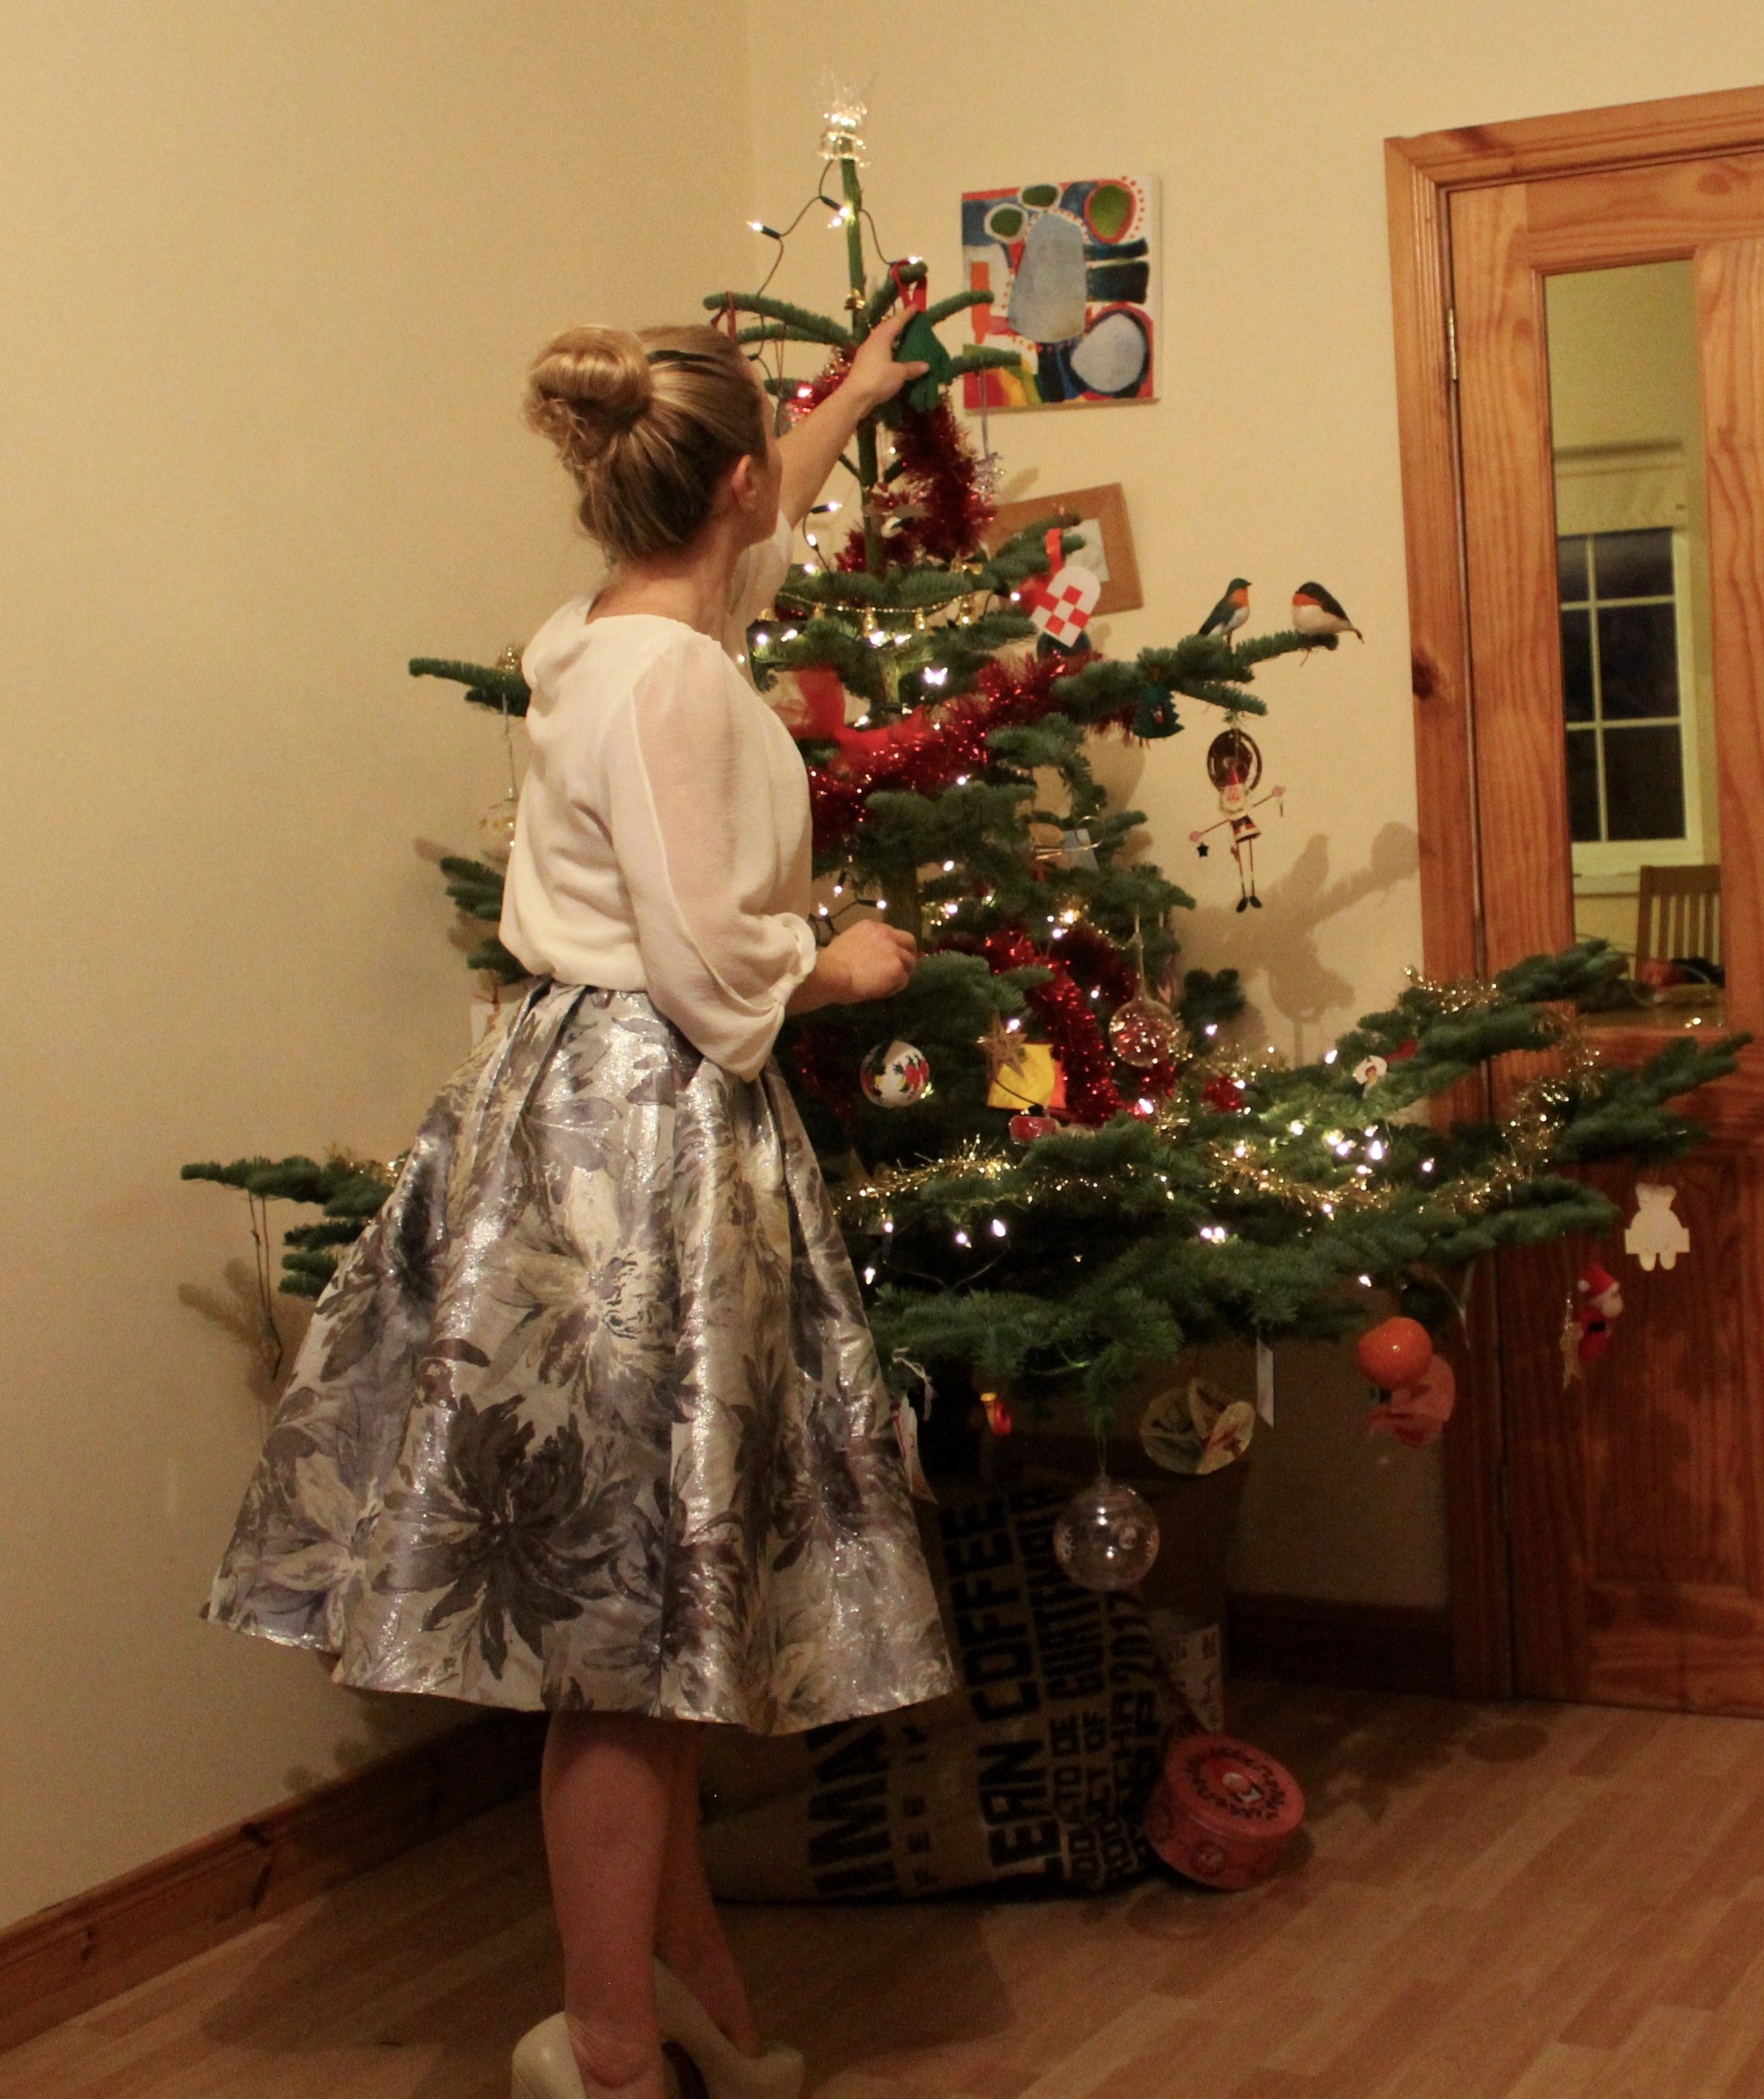 BONUS Track! Why not make Christmas a little mores sustainable and affordable for you too? I picked up this top in my local SVP for just €2 and the skirt in the Sligo Oxfam for just €10 - supporting good causes, keeping clothes from landfill and looking damn swish while doing it!